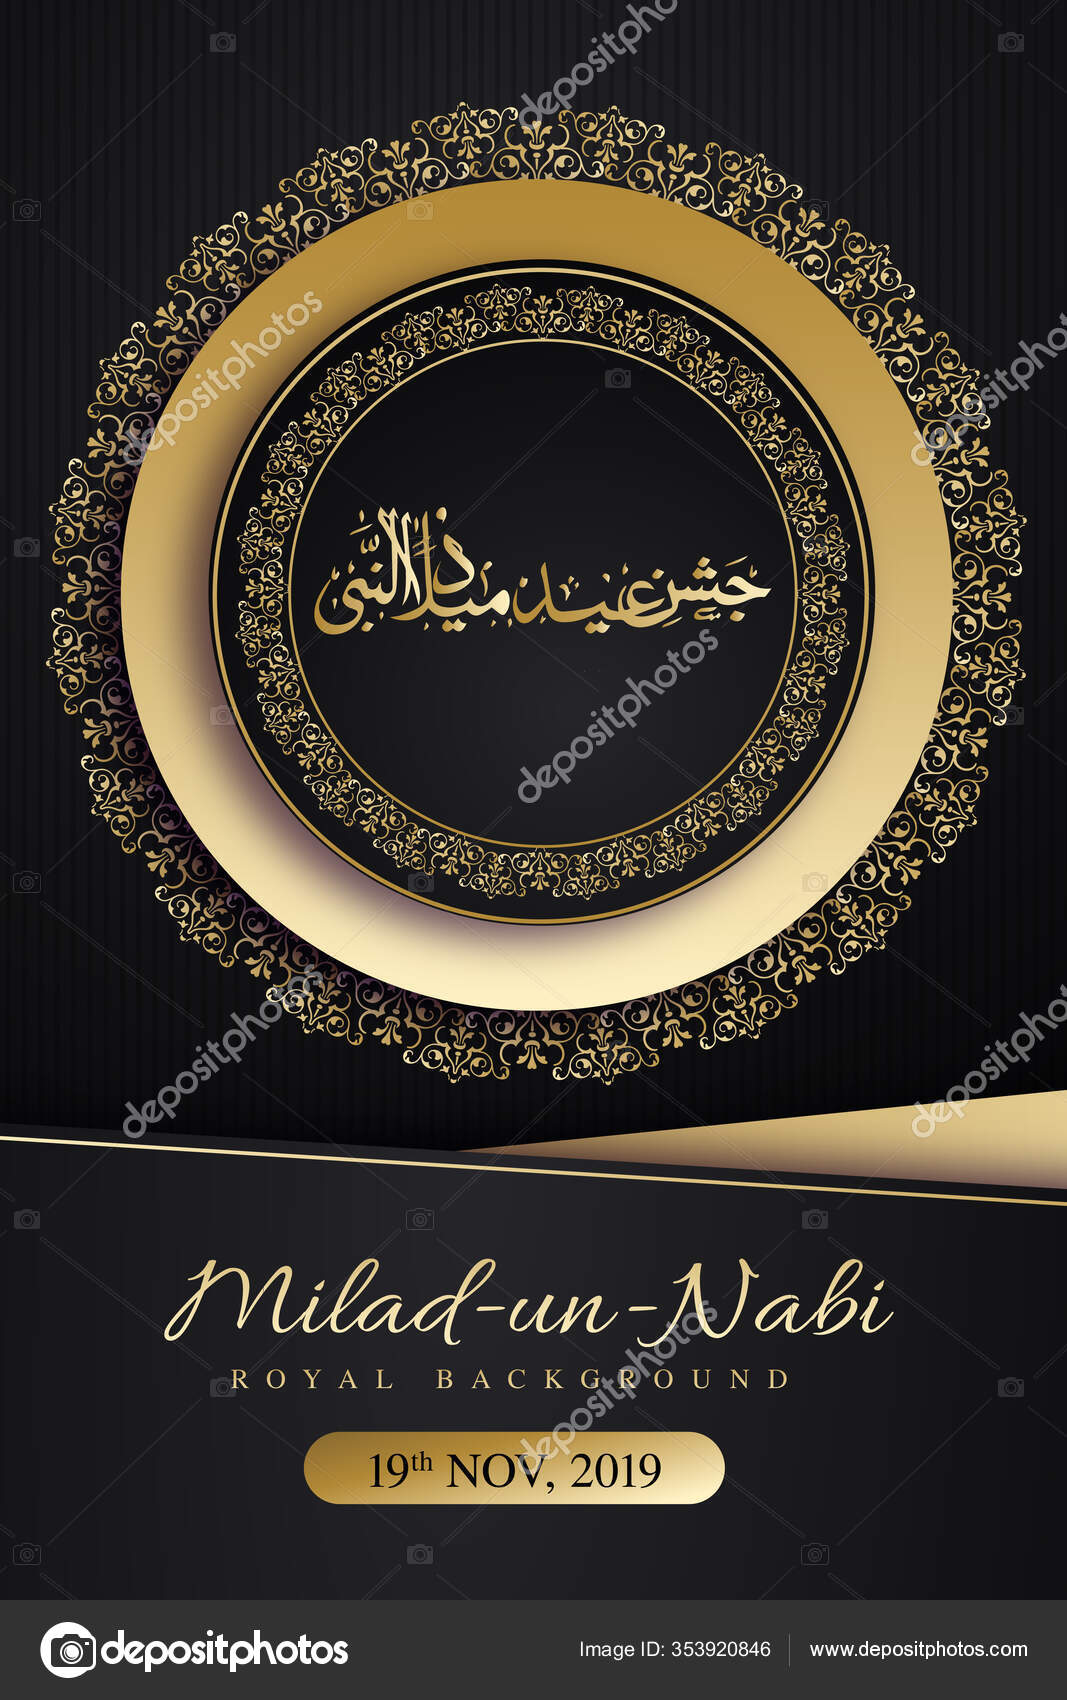 eid milad un nabi stock vectors royalty free eid milad un nabi illustrations depositphotos https depositphotos com 353920846 stock illustration royal eid milad nabi religious html